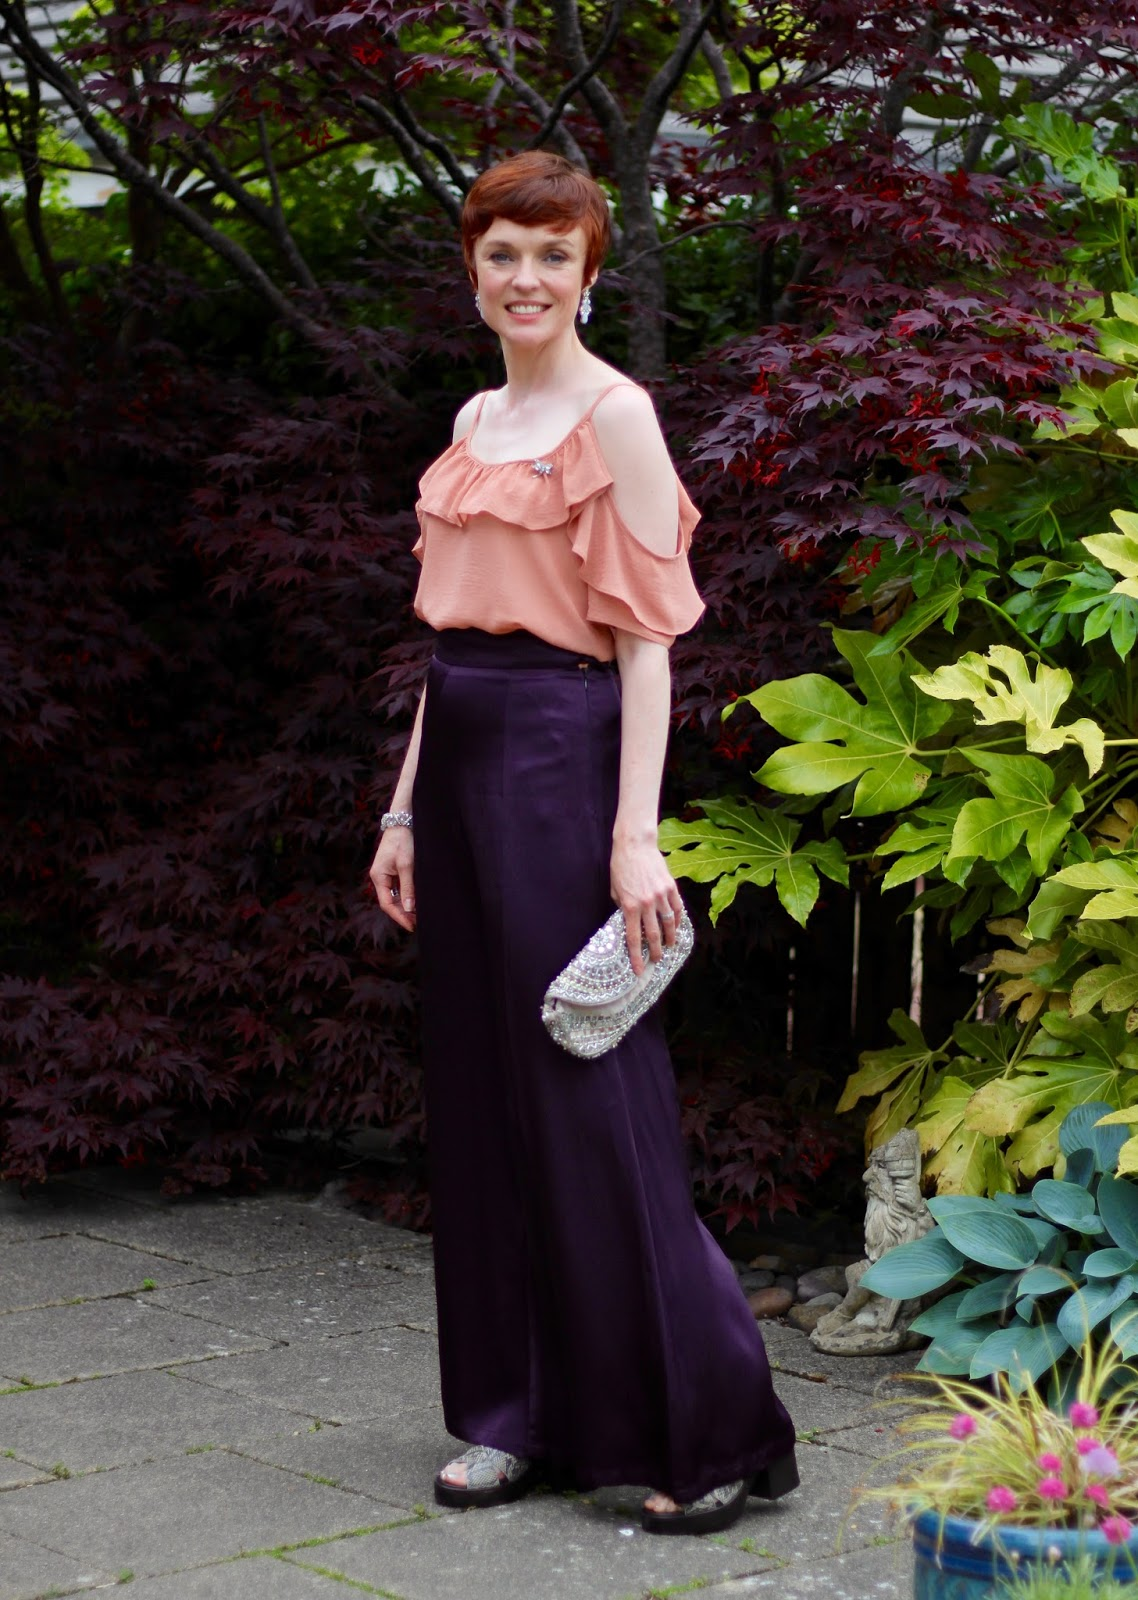 Purple Wide Satin Finery Trousers, Nude ruffle off the shoulder top, vagabond platform sandals | Over 40 | Fake Fabulous